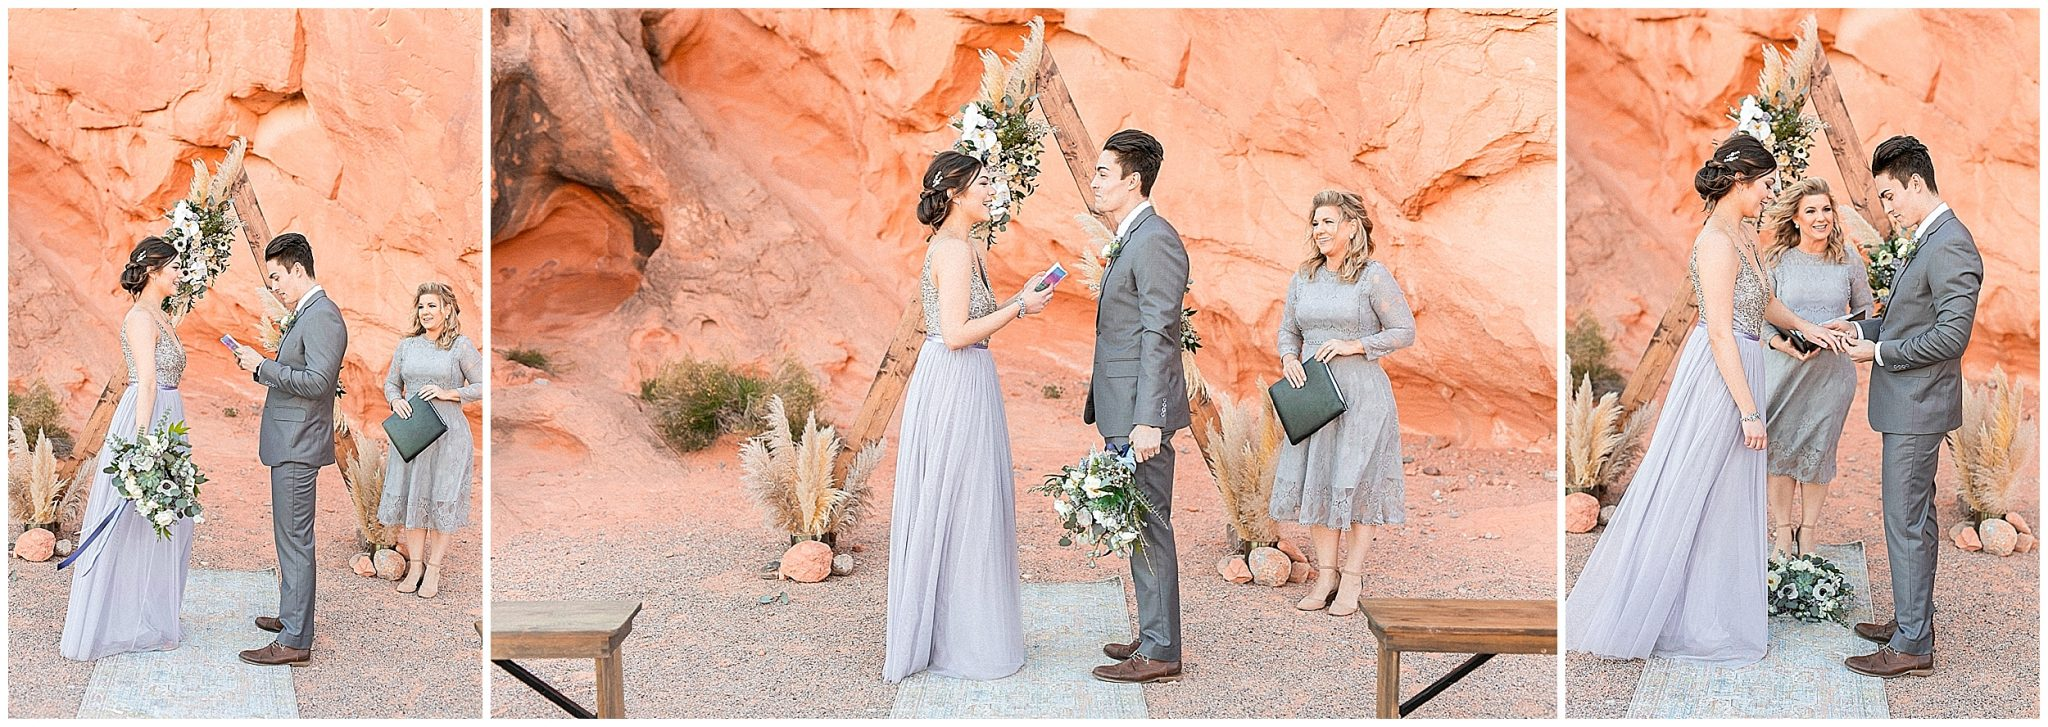 Valley of Fire Elopement_2903.jpg